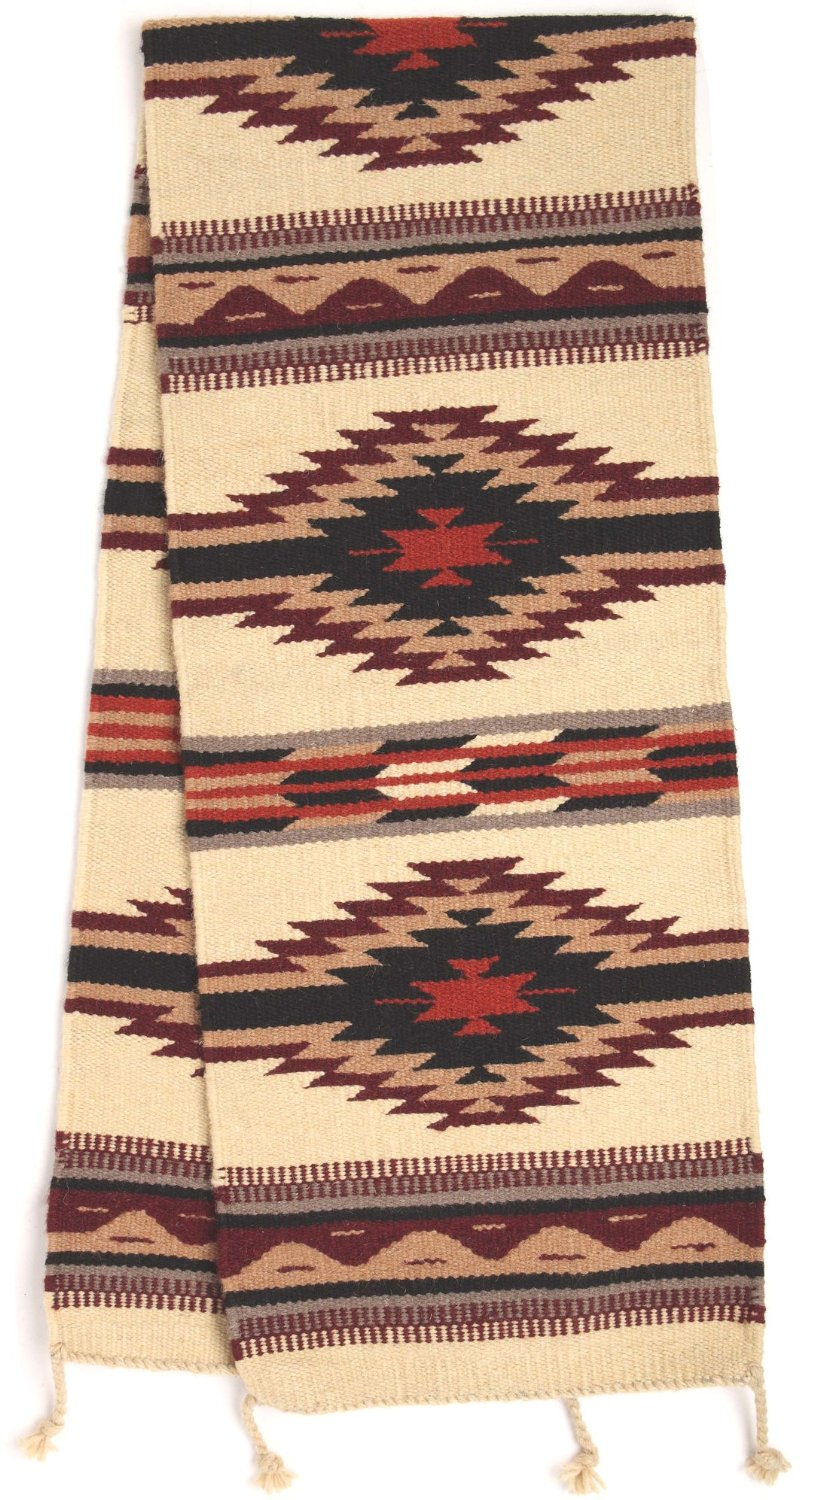 Southwest Style Table Runner Hand Woven Wool 16 X 80 In